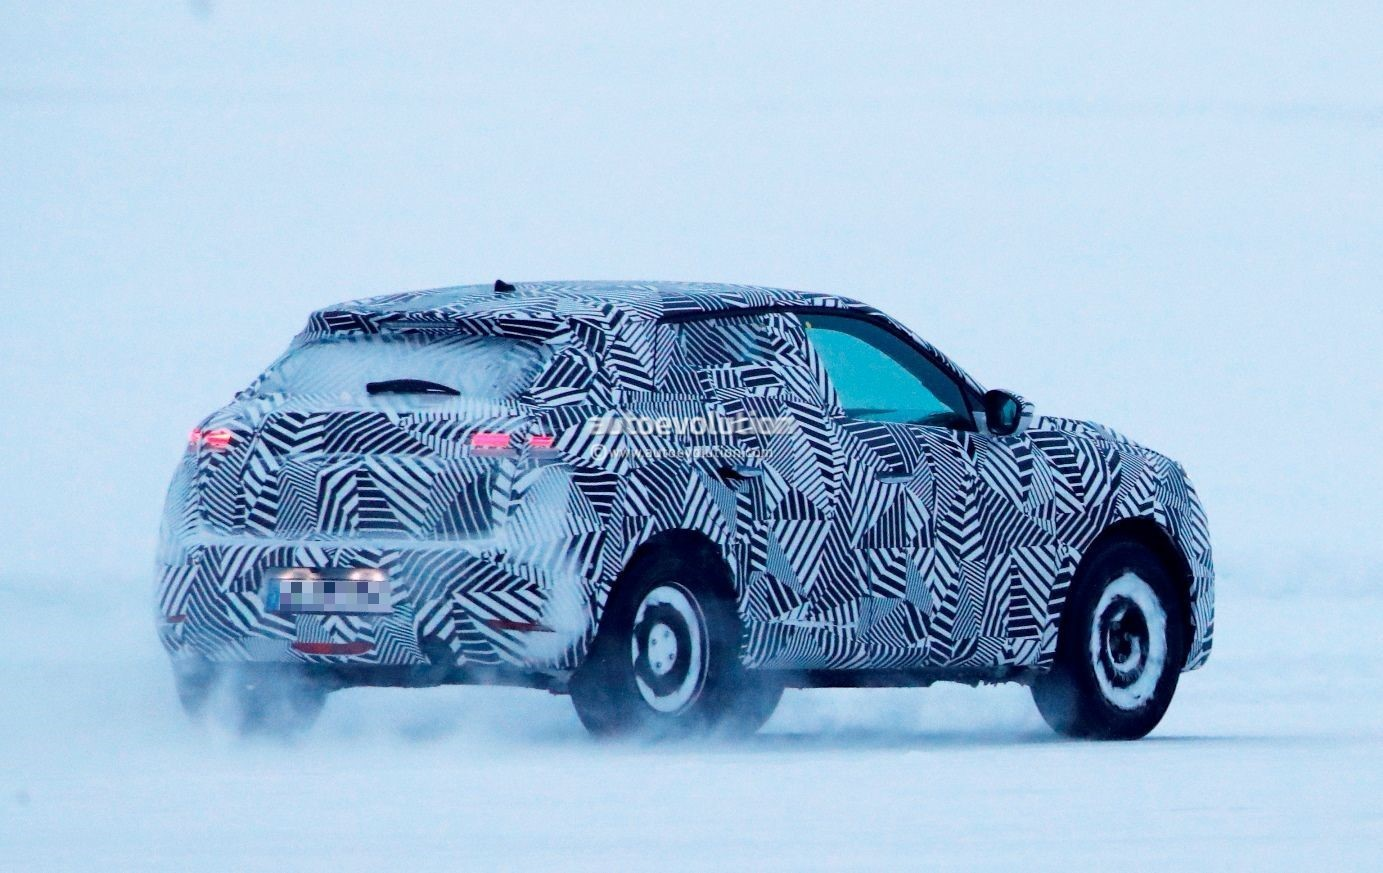 2019 Ds3 Crossback Spied Testing In Sub Zero Weather Autoevolution